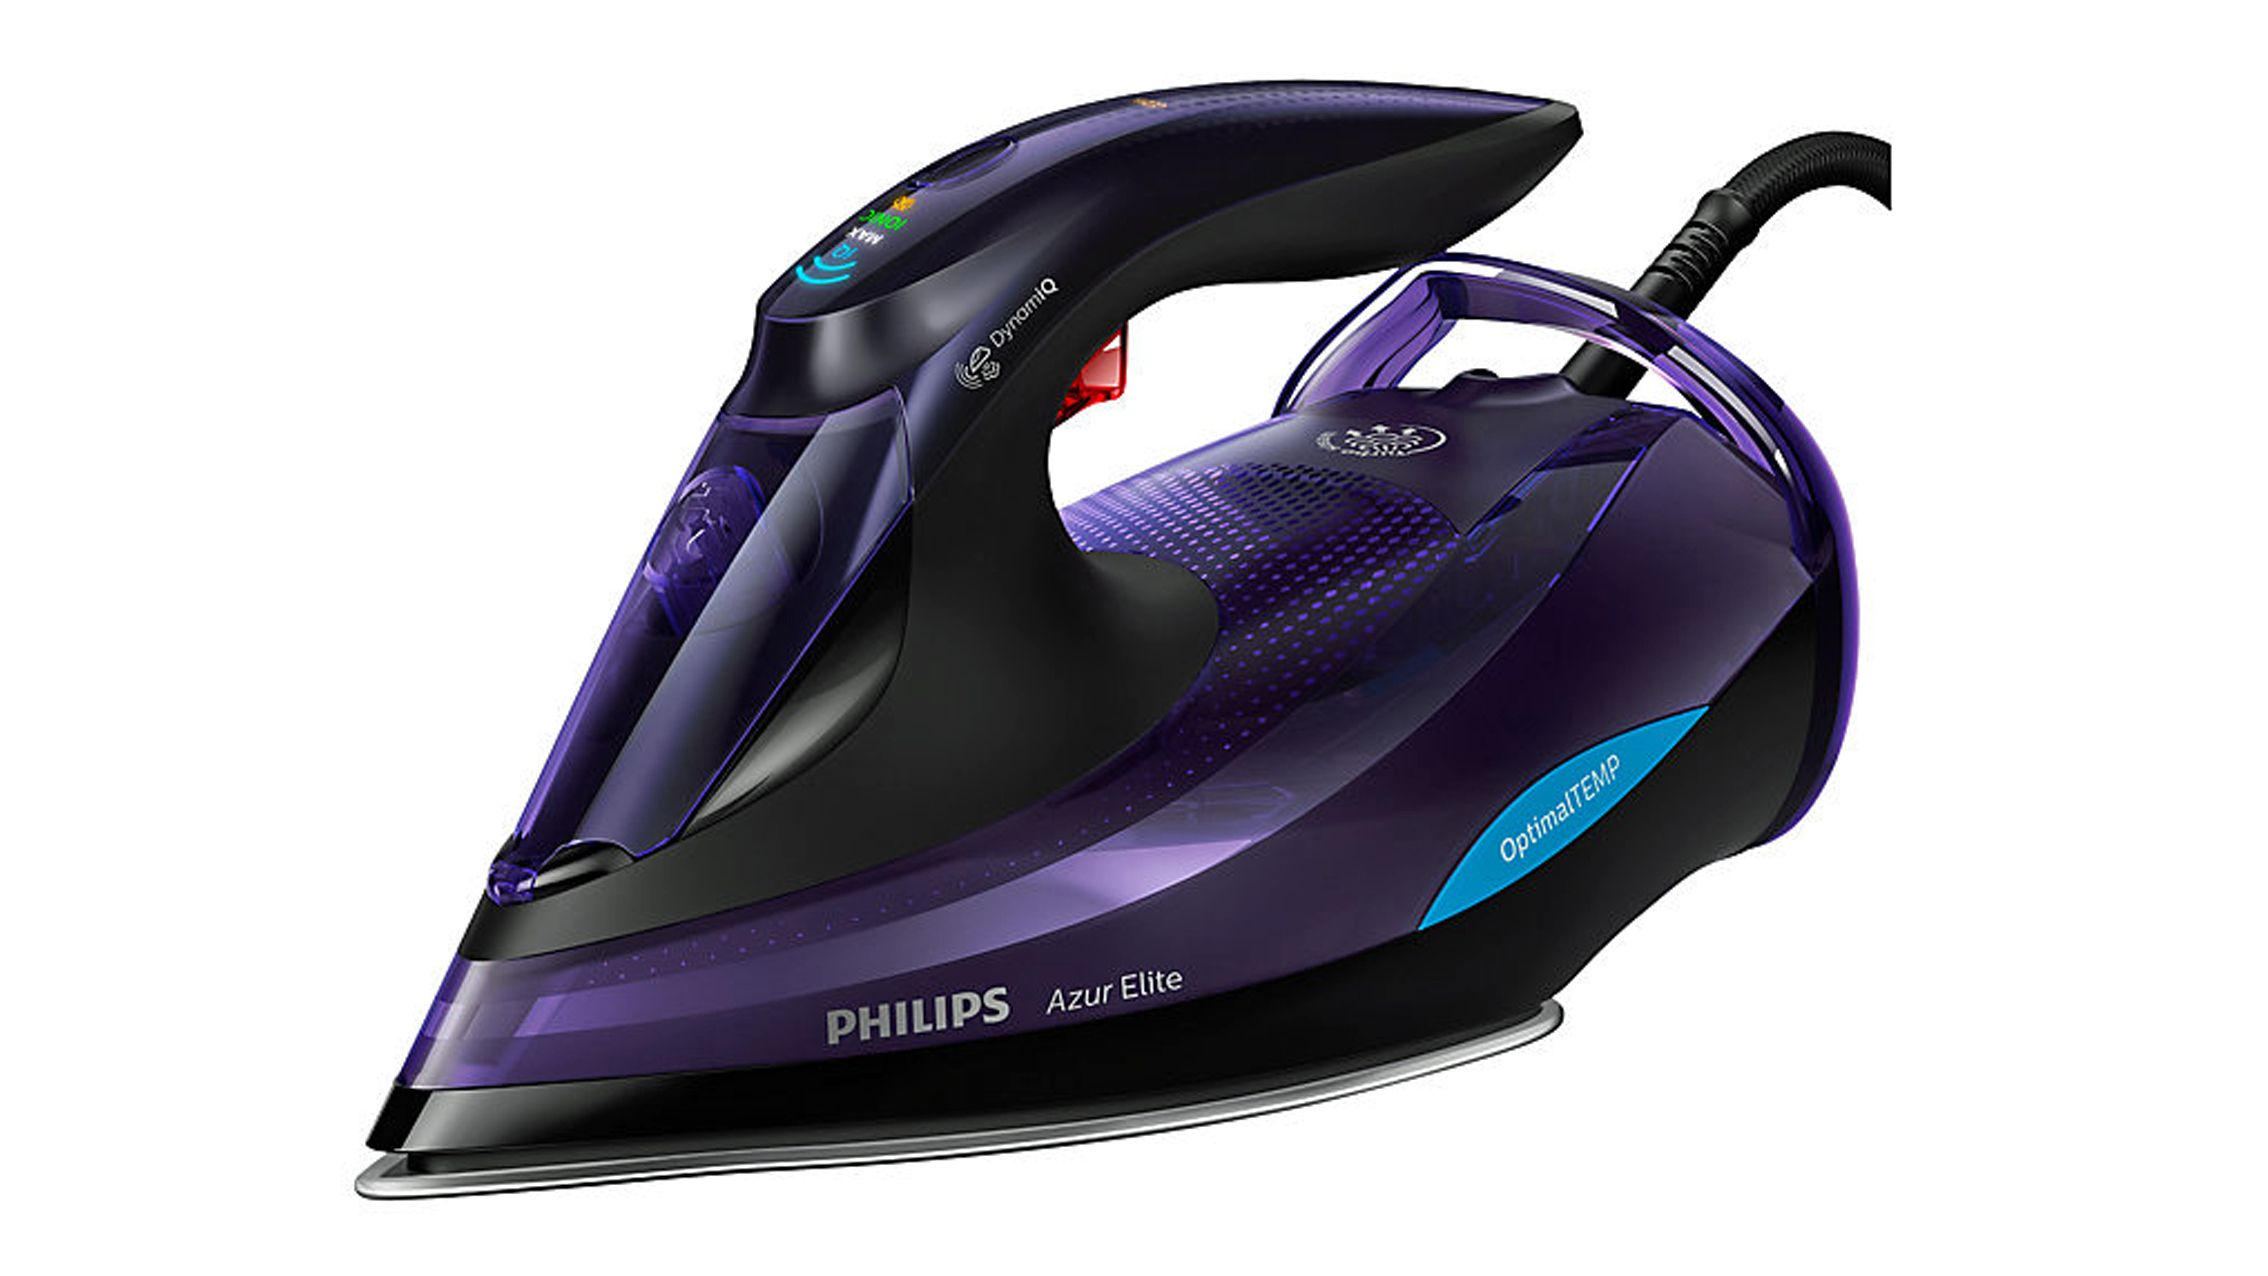 Best Iron 2020 The Best Steam Irons And Best Steam Generators Best Steam Iron Steam Iron Best Iron